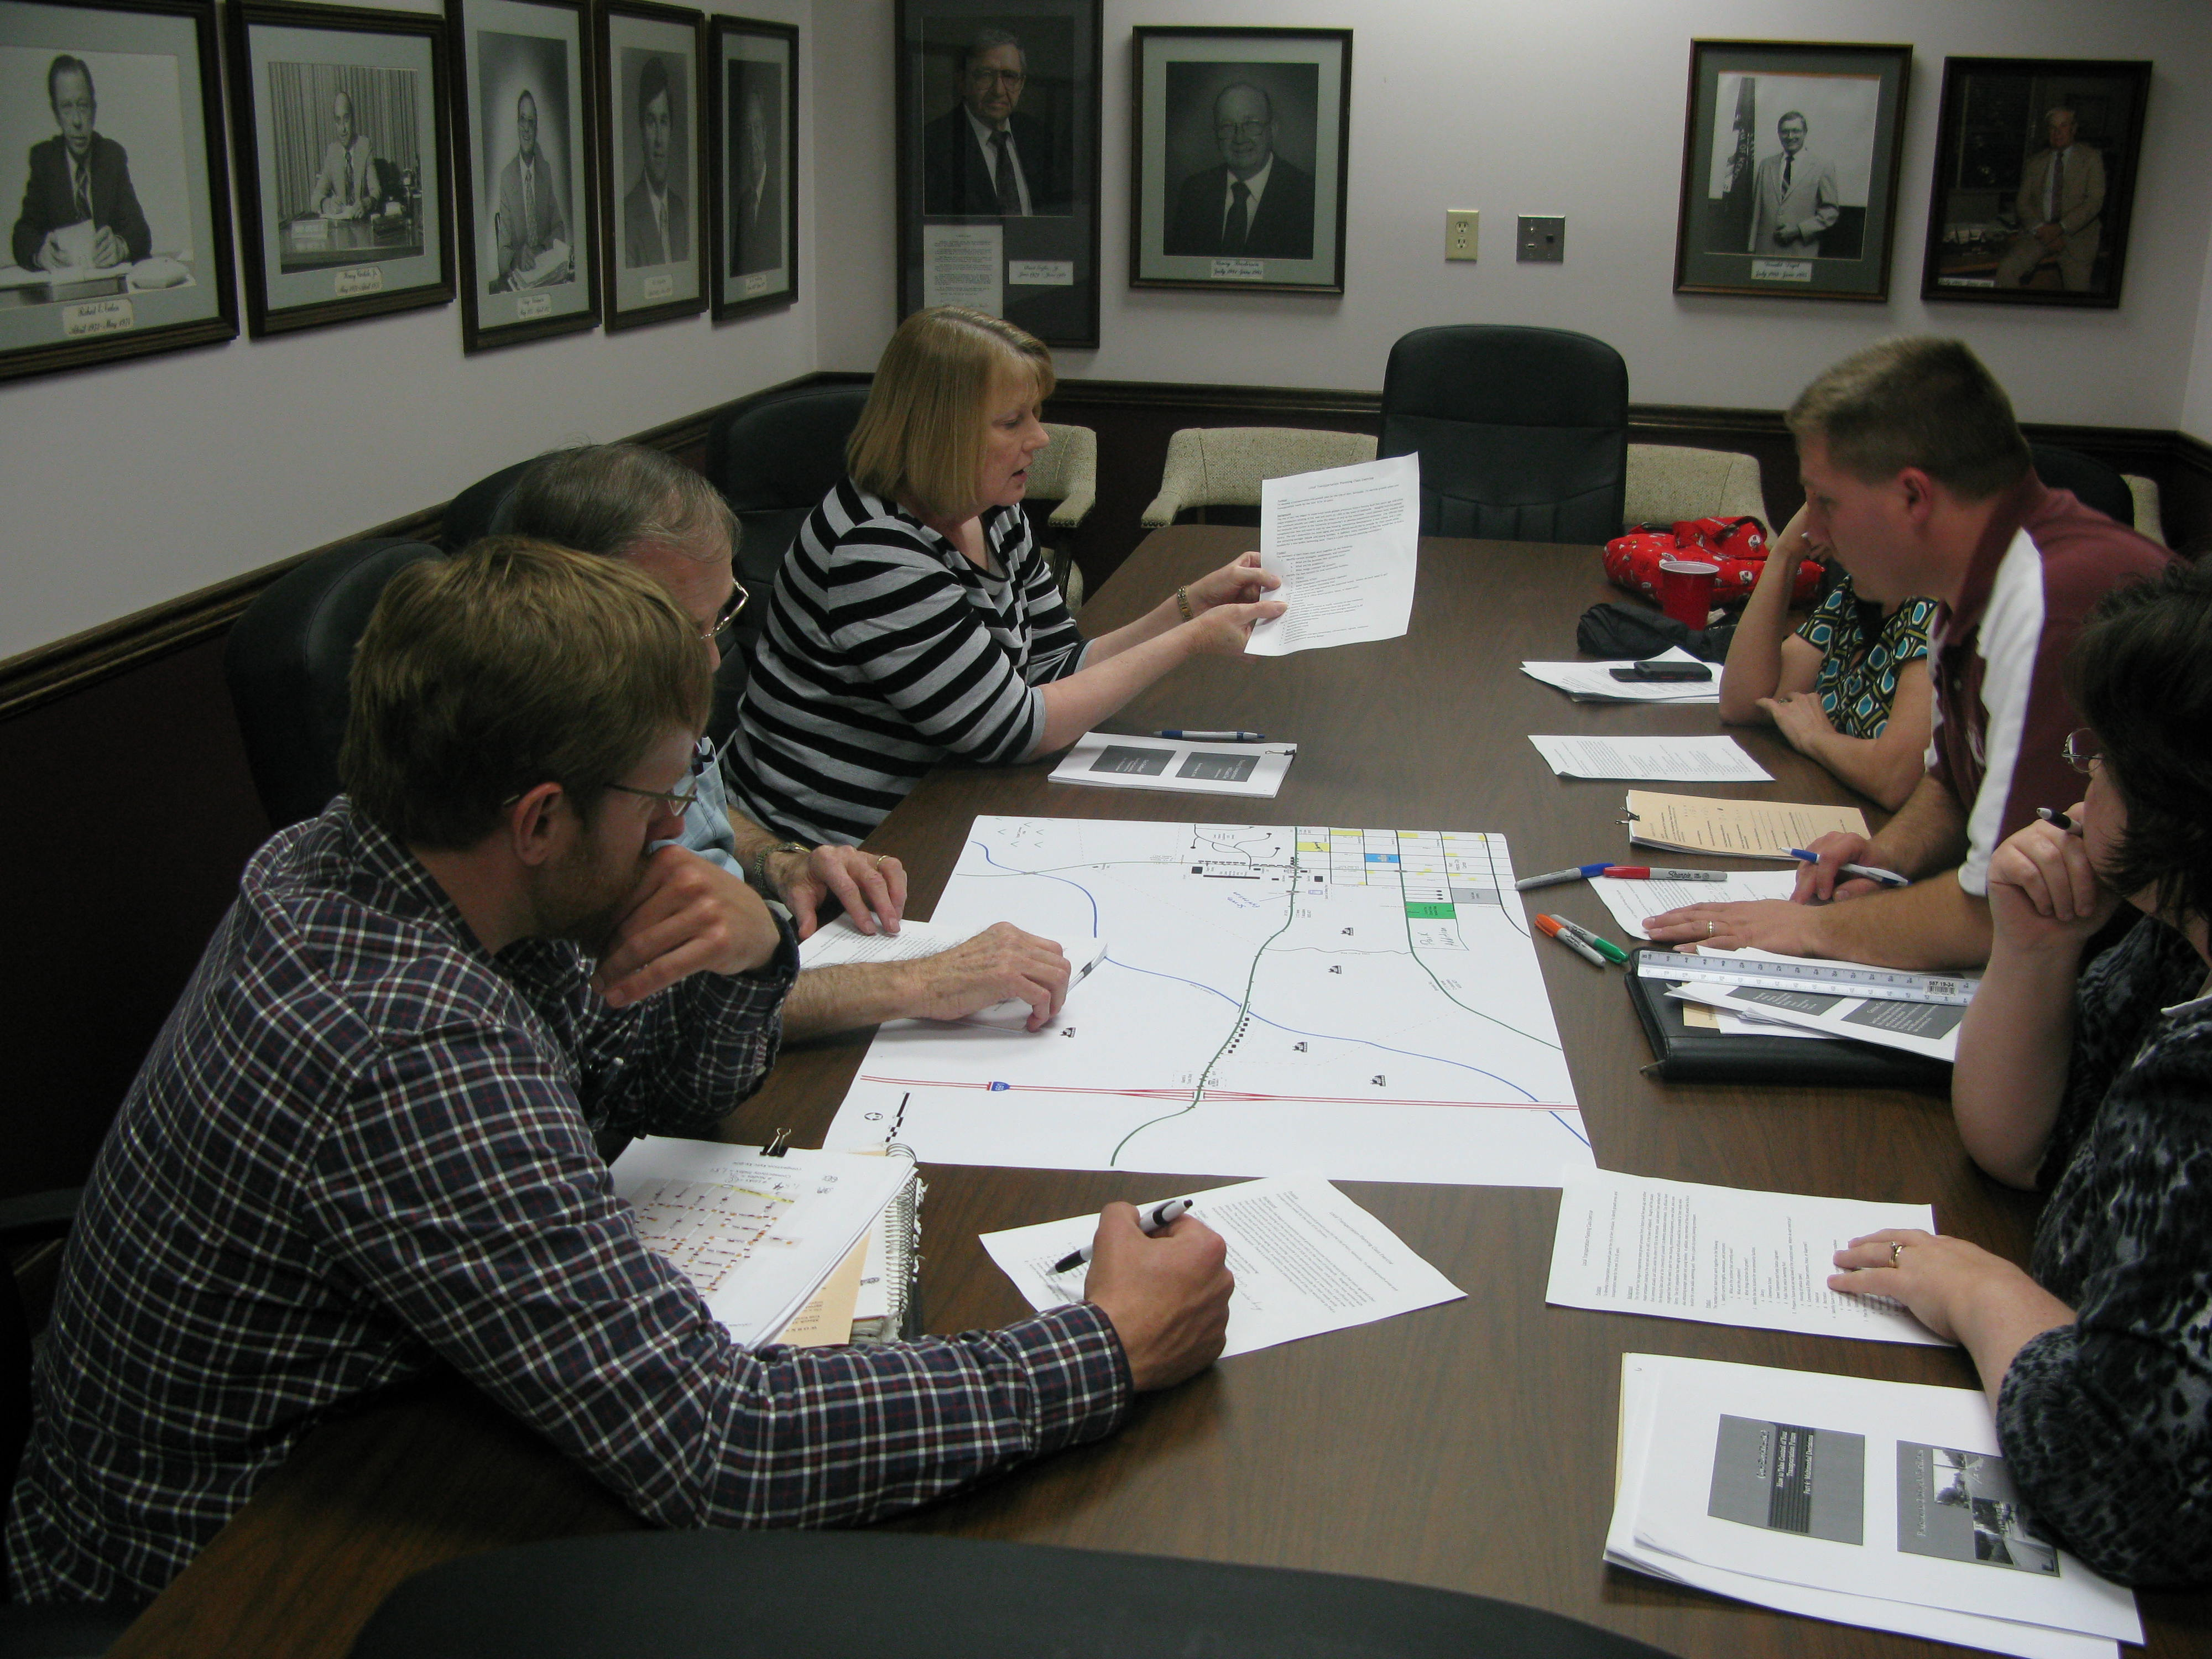 Planning and zoning officials from the ten county BRADD region received training on transportation planning issues at the BRADD offices in March. The interactive workshop was co-sponsored by the Center for Local Governments.